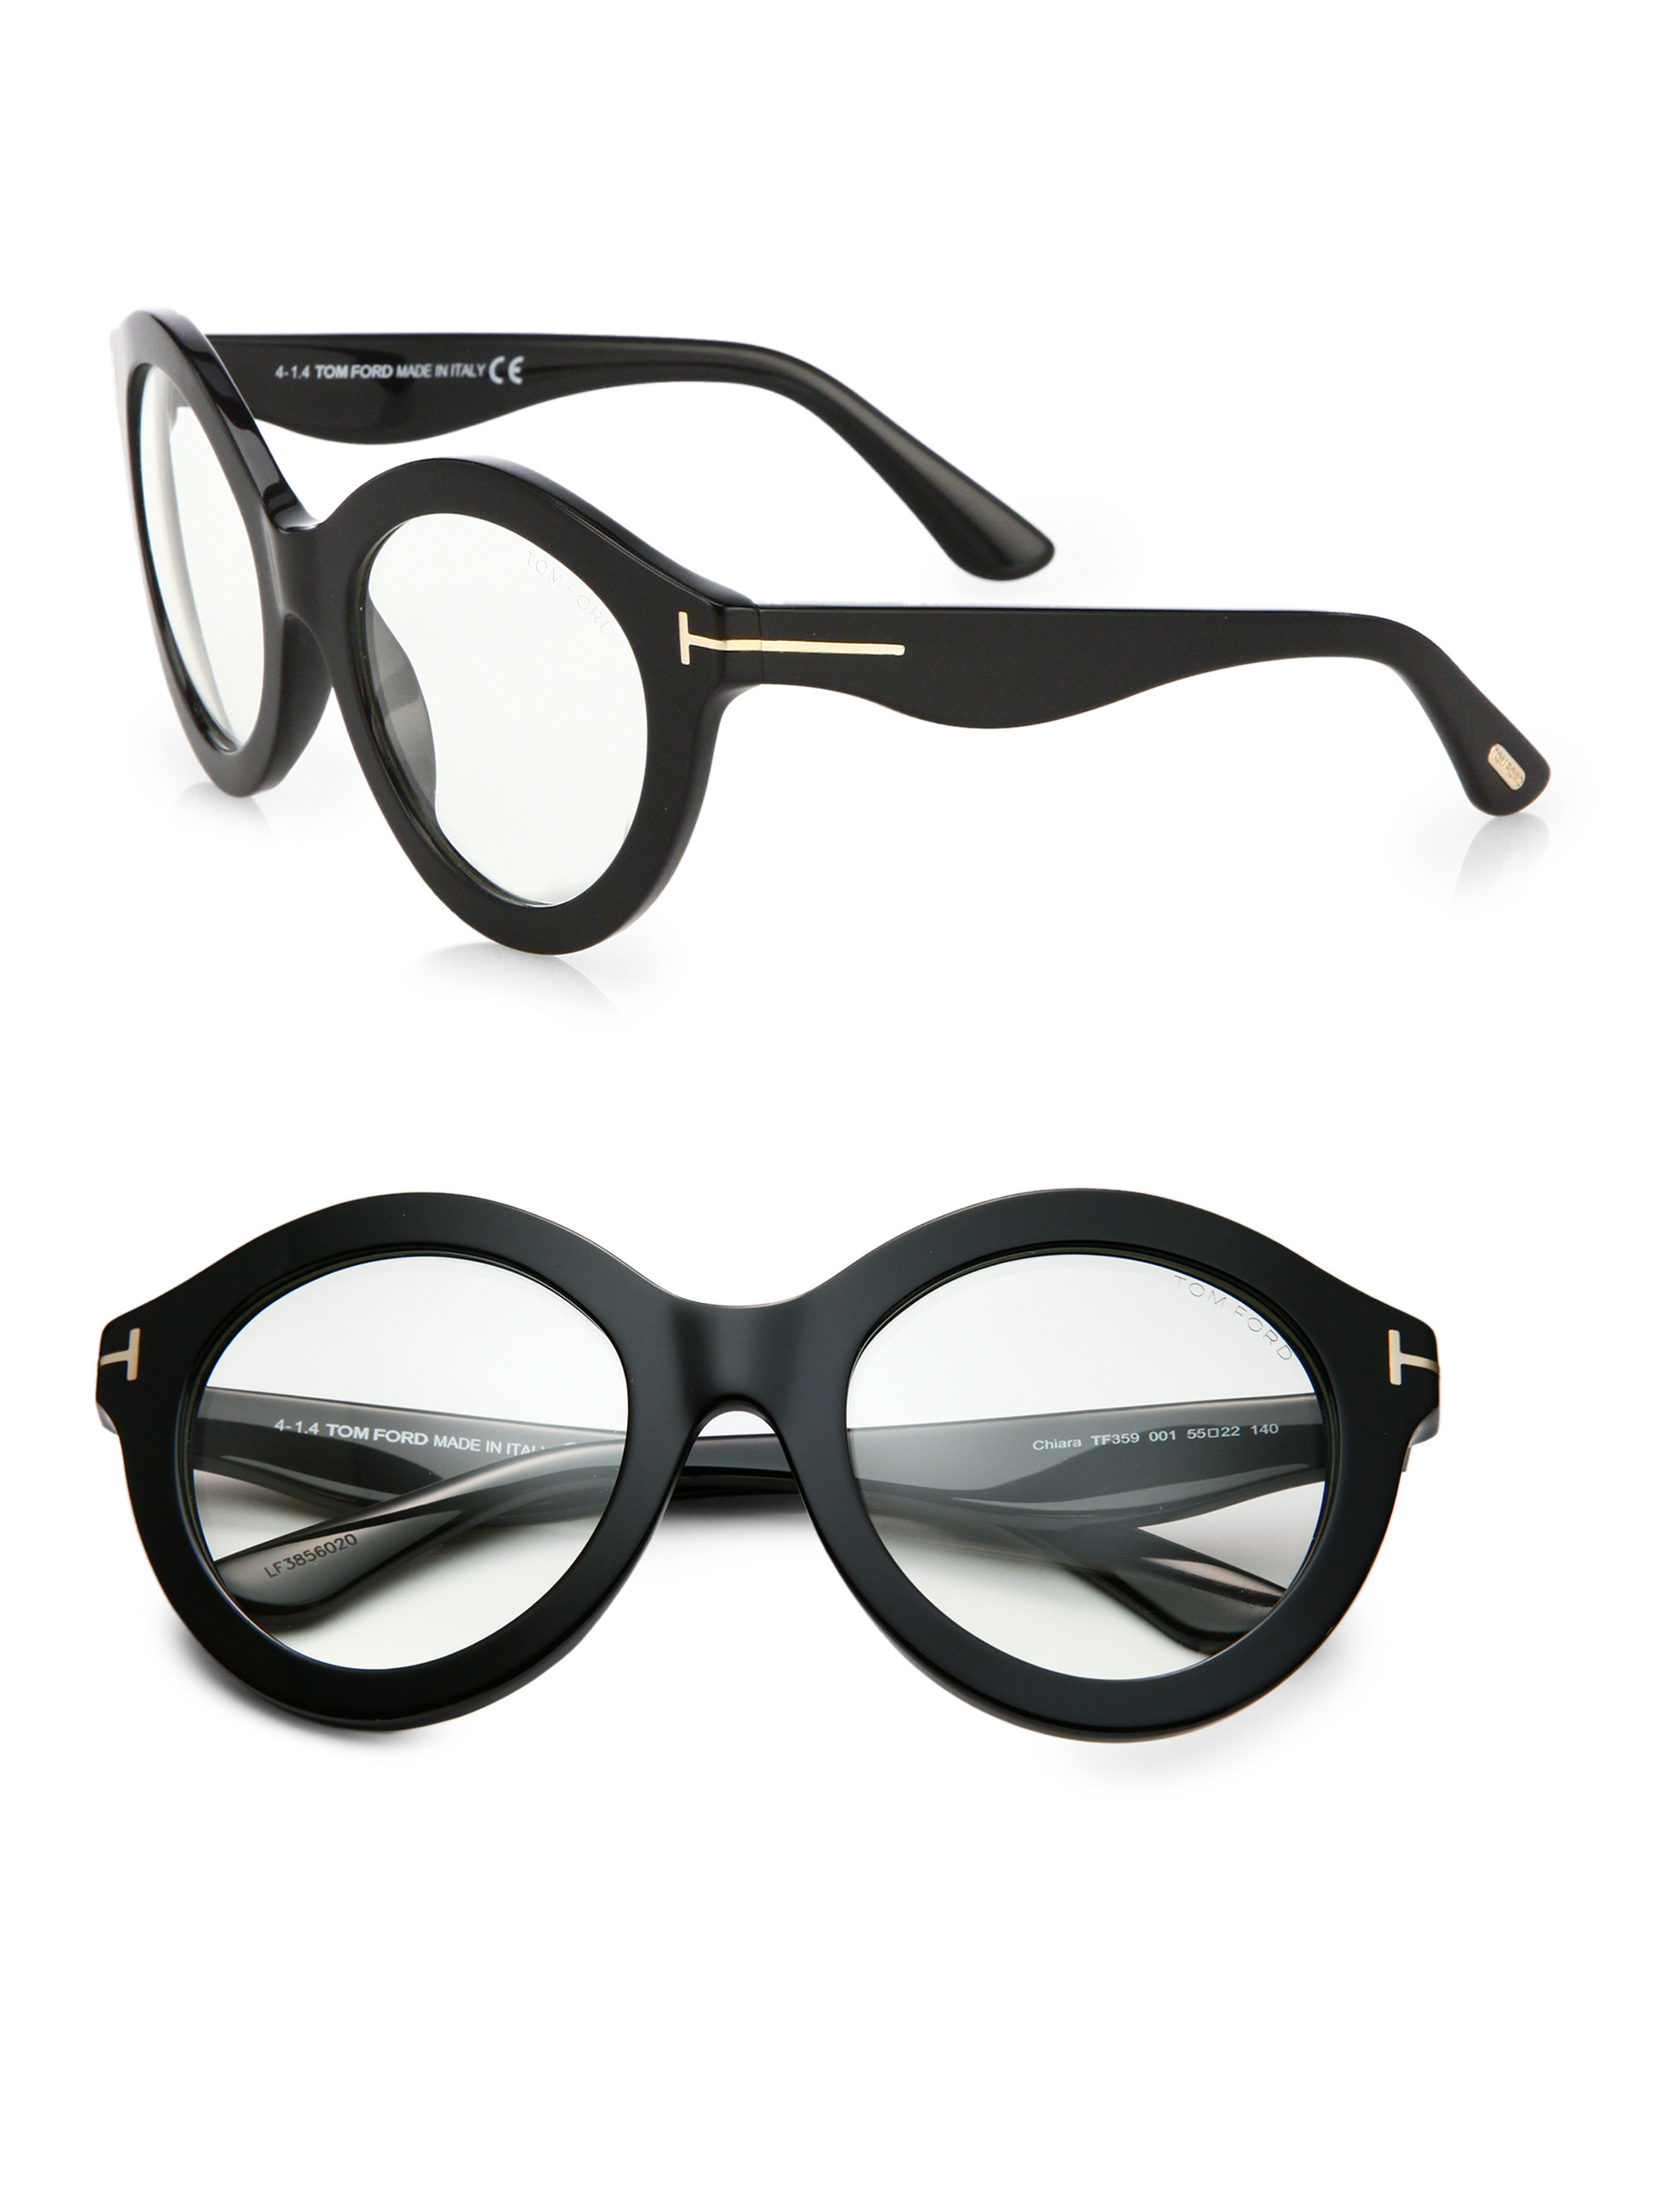 Tom Ford Exaggerated 55mm Round Optical Glasses In Black